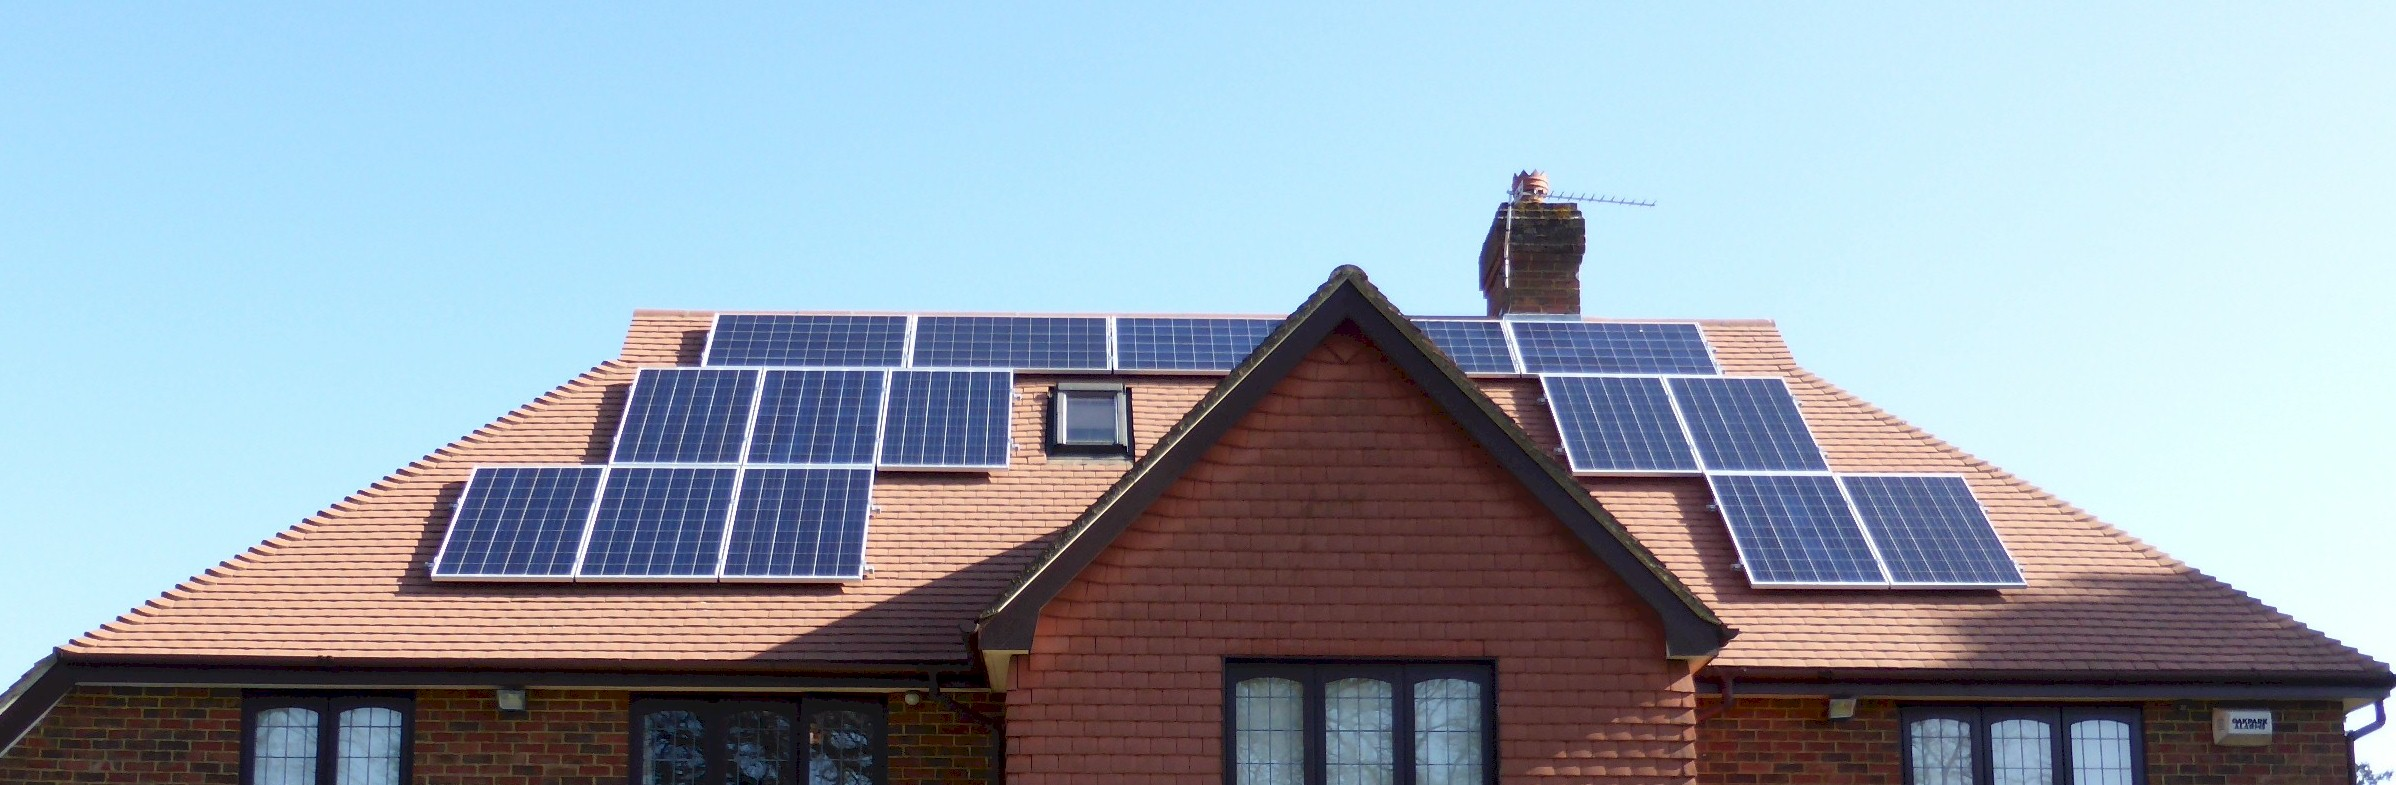 Solar Panels Farnham Common Berkshire